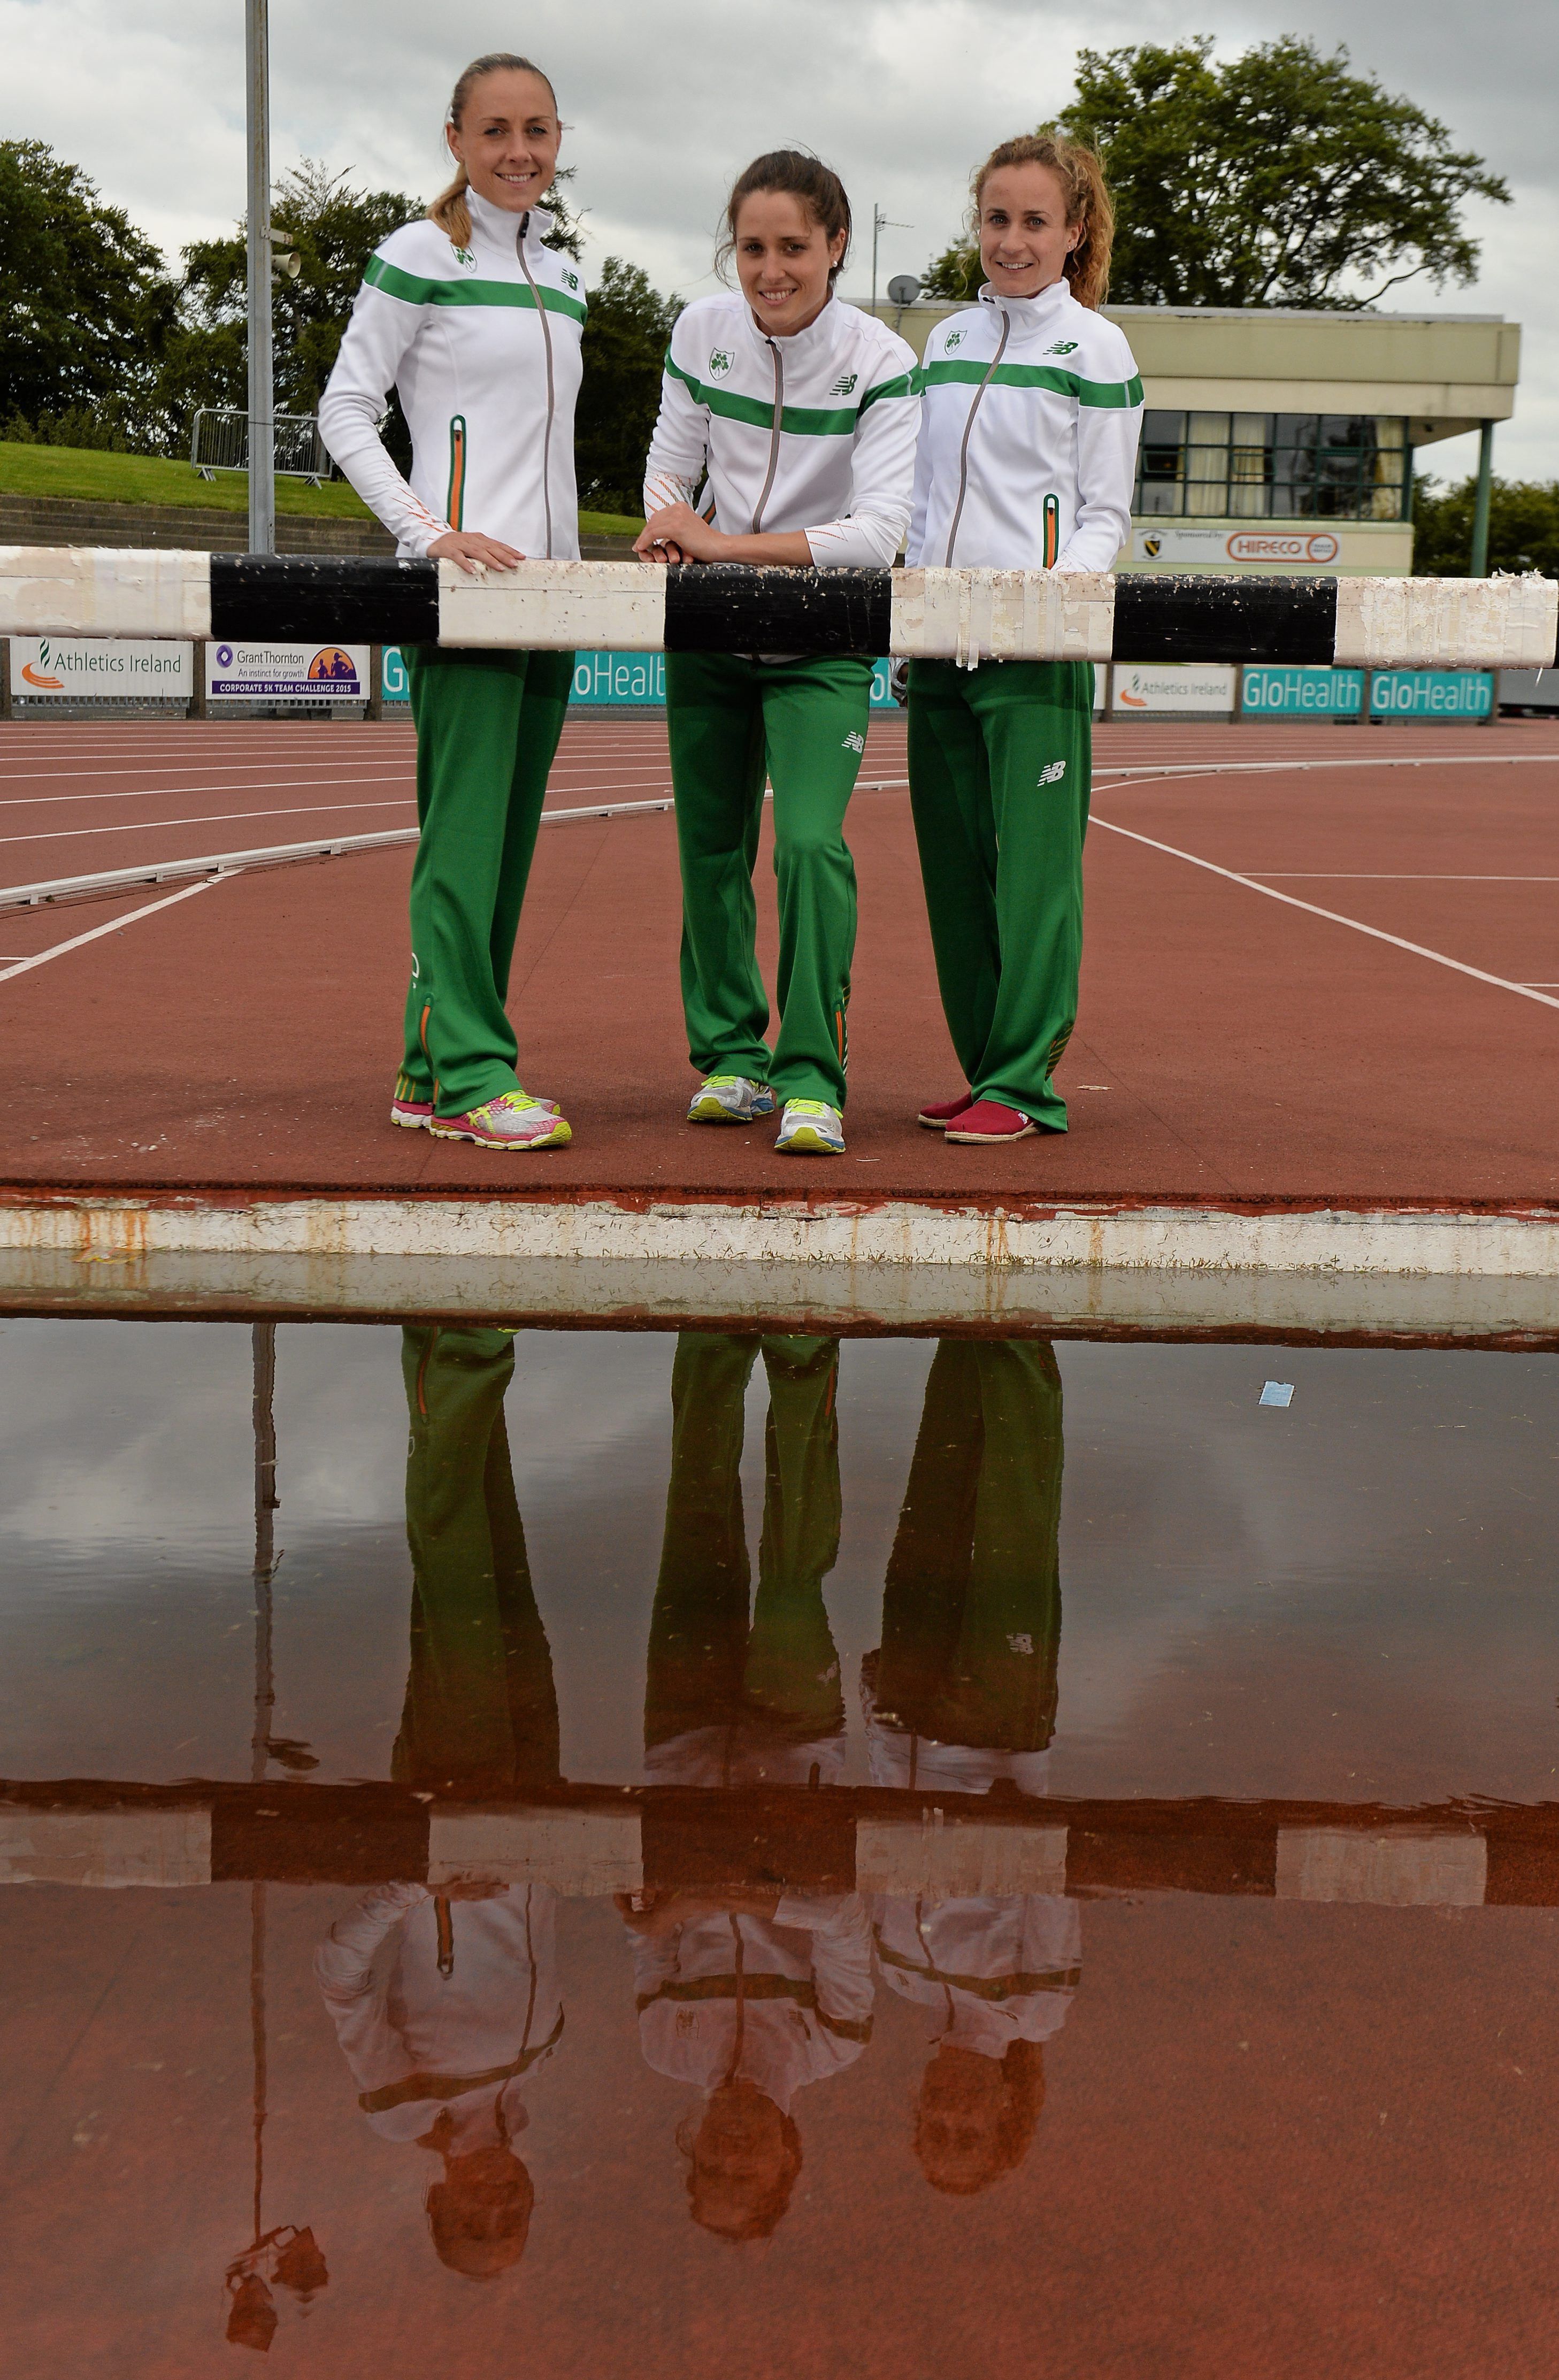 Letterkenny Olympic qualifiers - Kerry O'Flaherty, Michelle Finn & Sara Treacy